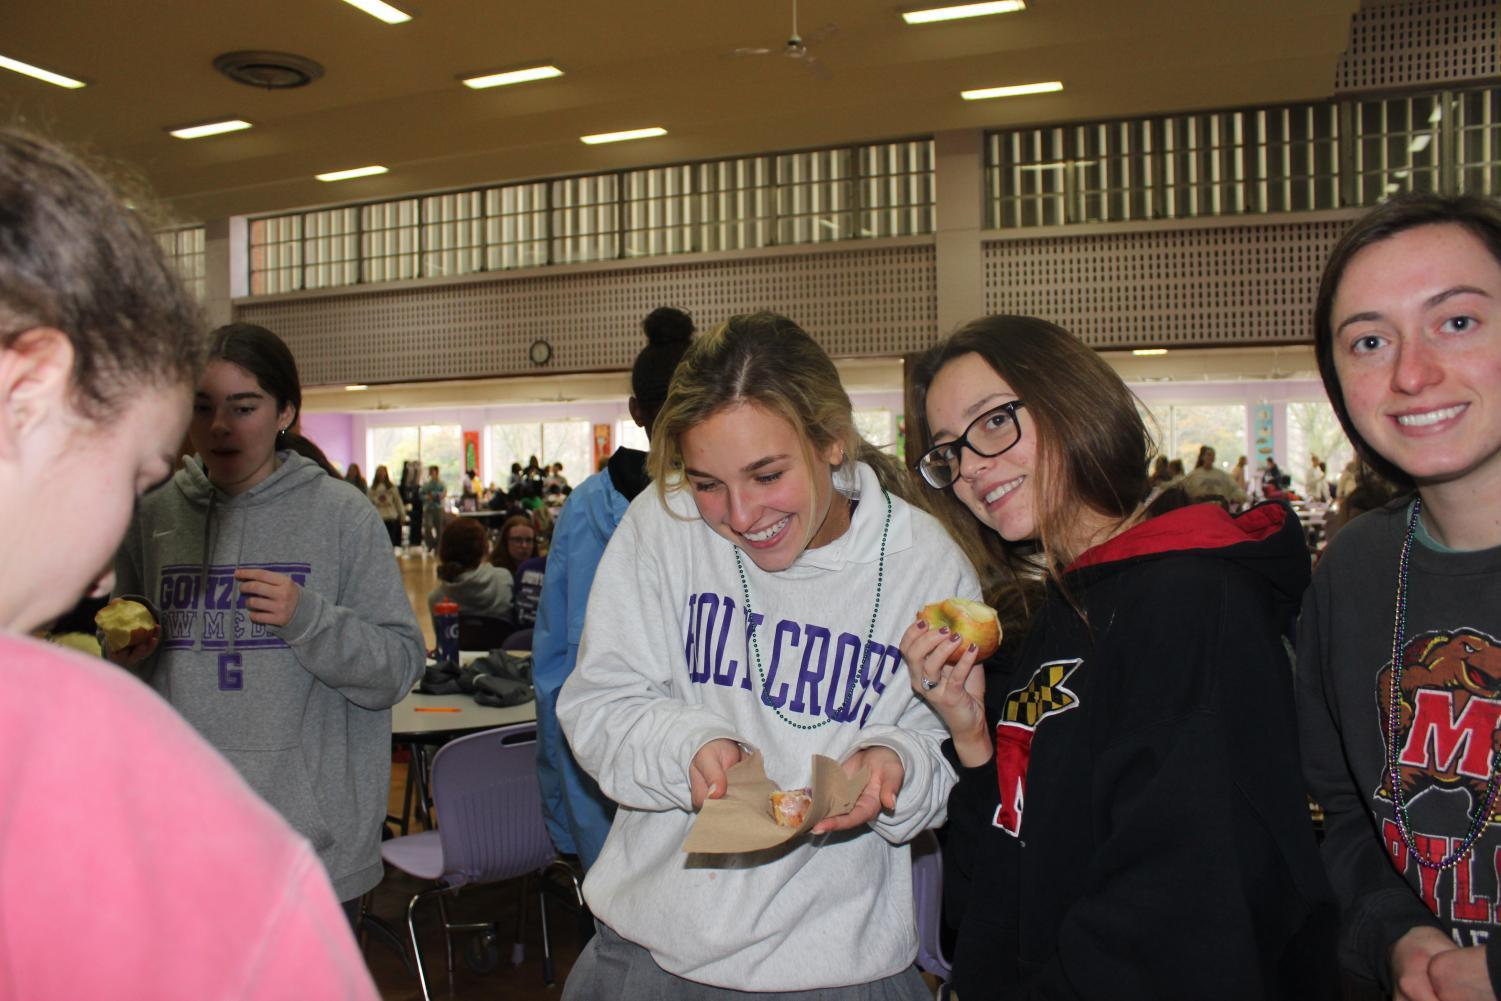 Kate Cosgrove and Charlotte Whittier getting their King Cake